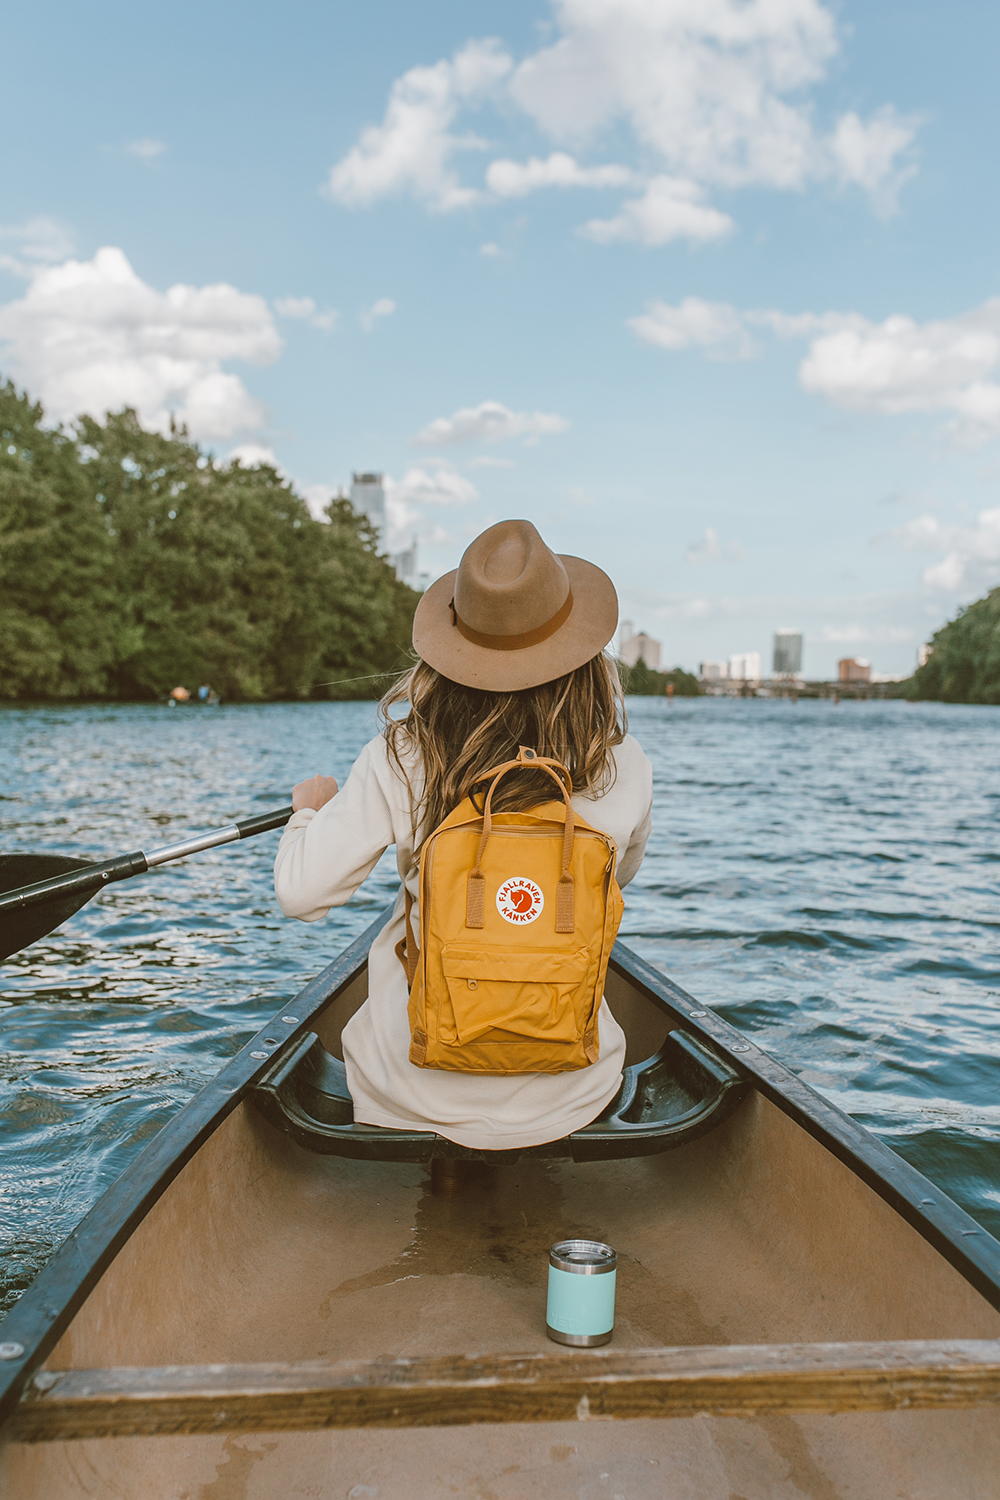 livvyland-blog-olivia-watson-canoe-lady-bird-lake-austin-texas-lifestyle-fashion-blogger-backcountry-fjallraven-kanken-ochre-mustard-yellow-backpack-yeti-rambler-1